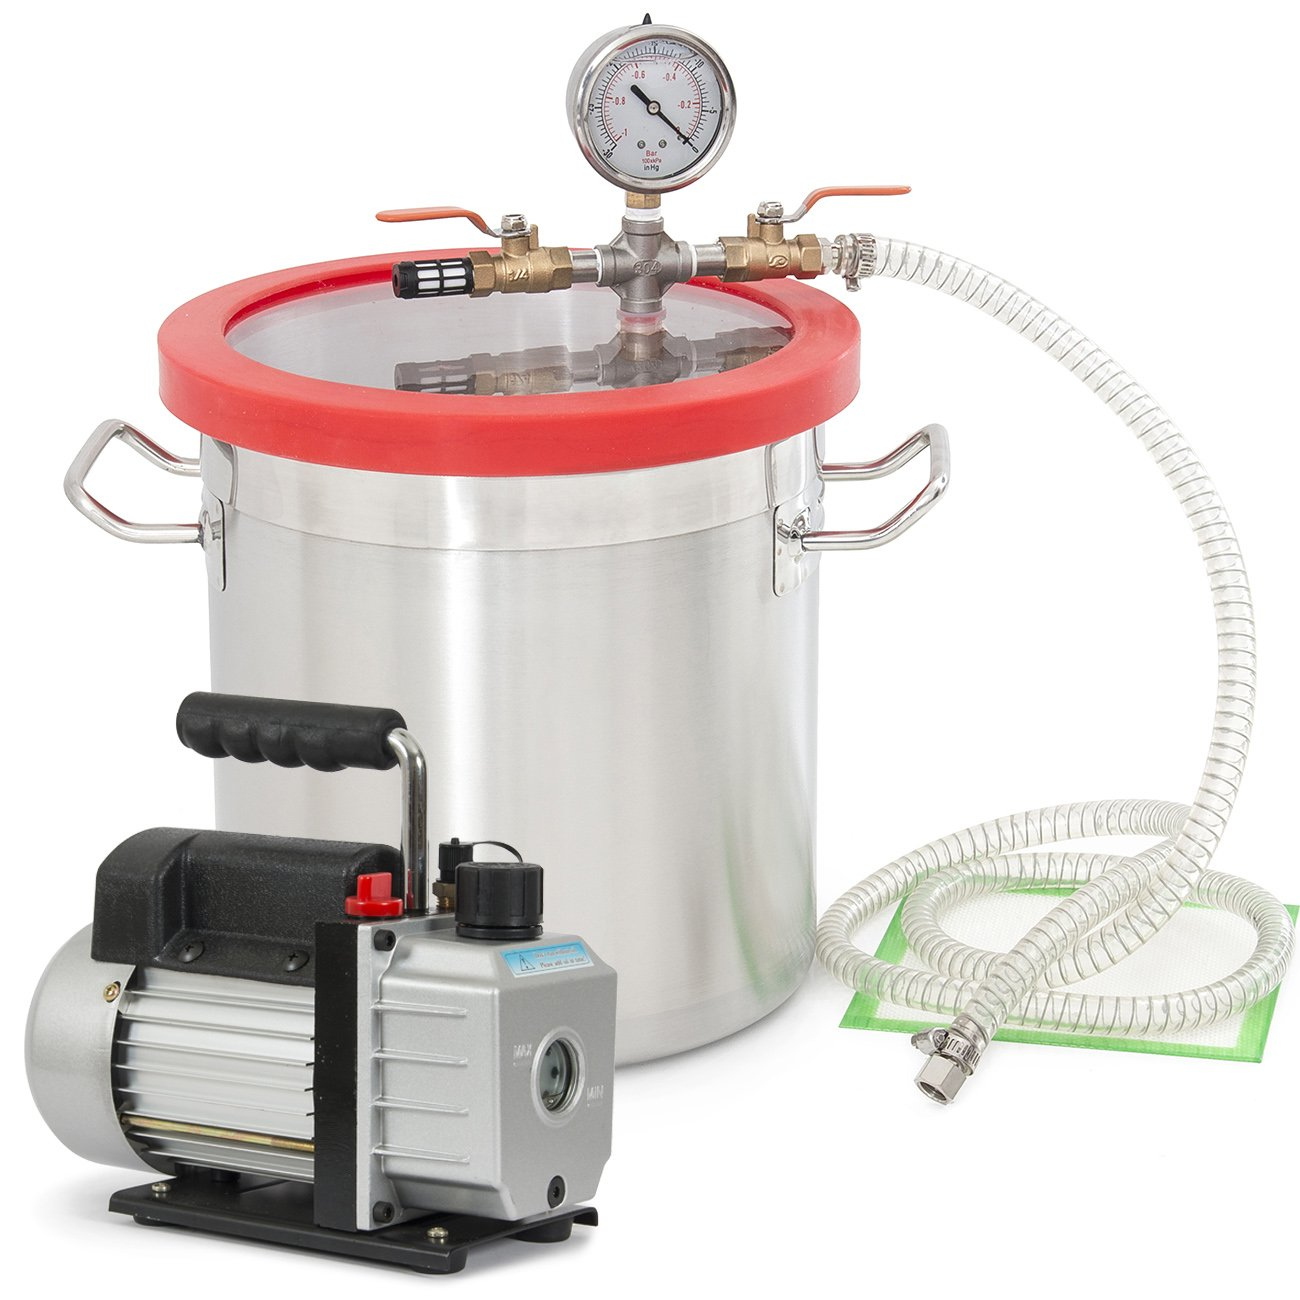 ARKSEN Vacuum Chamber (2 Gallon) Silicone Expoxy Degassing and 4CFM Vacuum 1/3HP Pump by ARKSEN